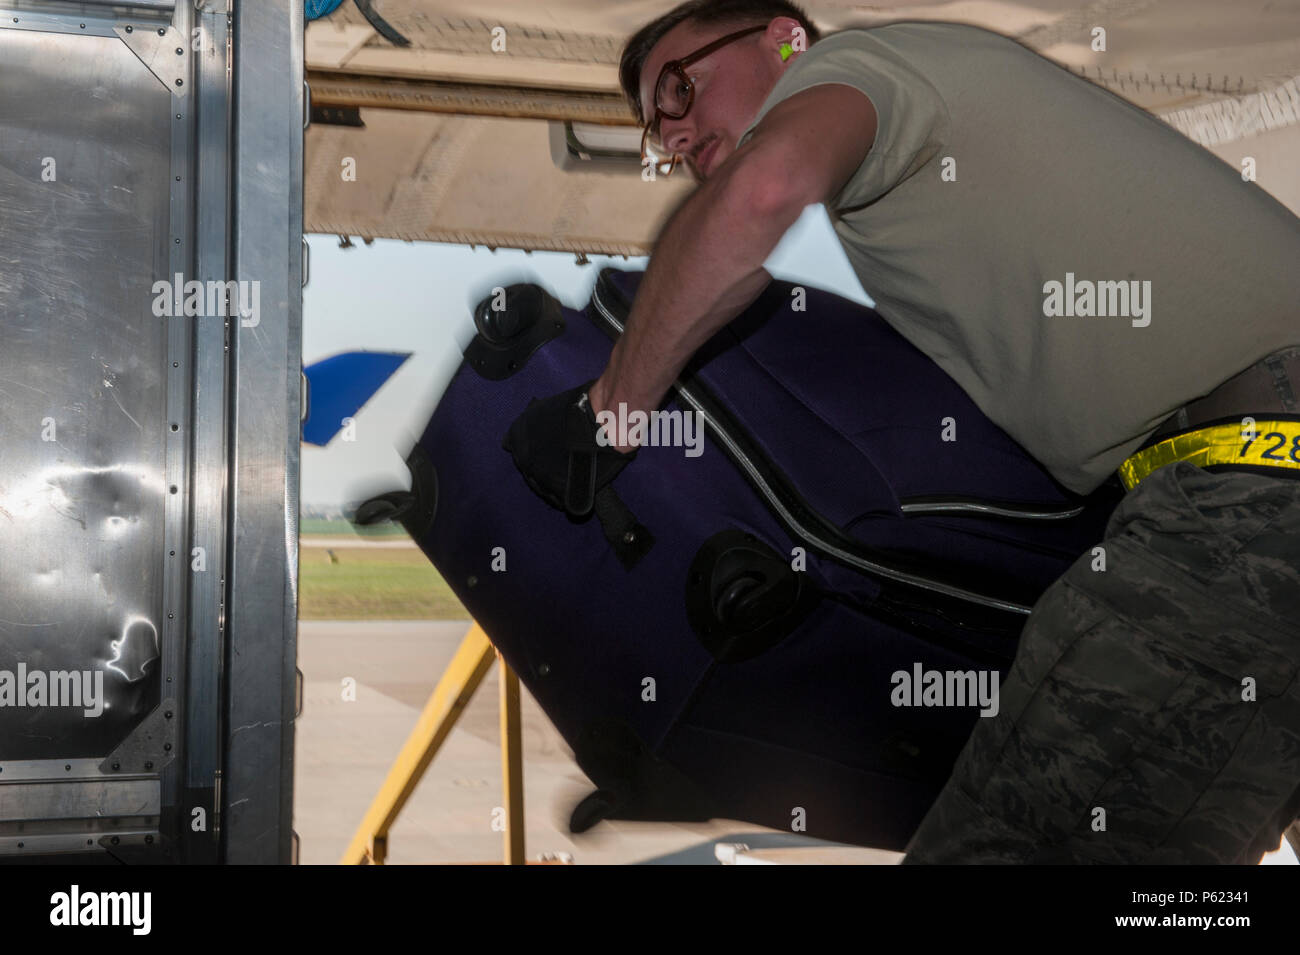 U.S. Air Force Senior Airman Chase Baker, 728th Air Mobility Squadron air terminal operations center information controller, throws luggage into the storage area of an Atlas Air 747 airliner April 1, 2016 at Incirlik Air Base, Turkey. Airmen from the 728th AMS built, staged, transported, and loaded luggage into aircraft to aid in the process of an ordered departure. (U.S. Air Force photo by Staff Sgt. Jack Sanders/Released) - Stock Image